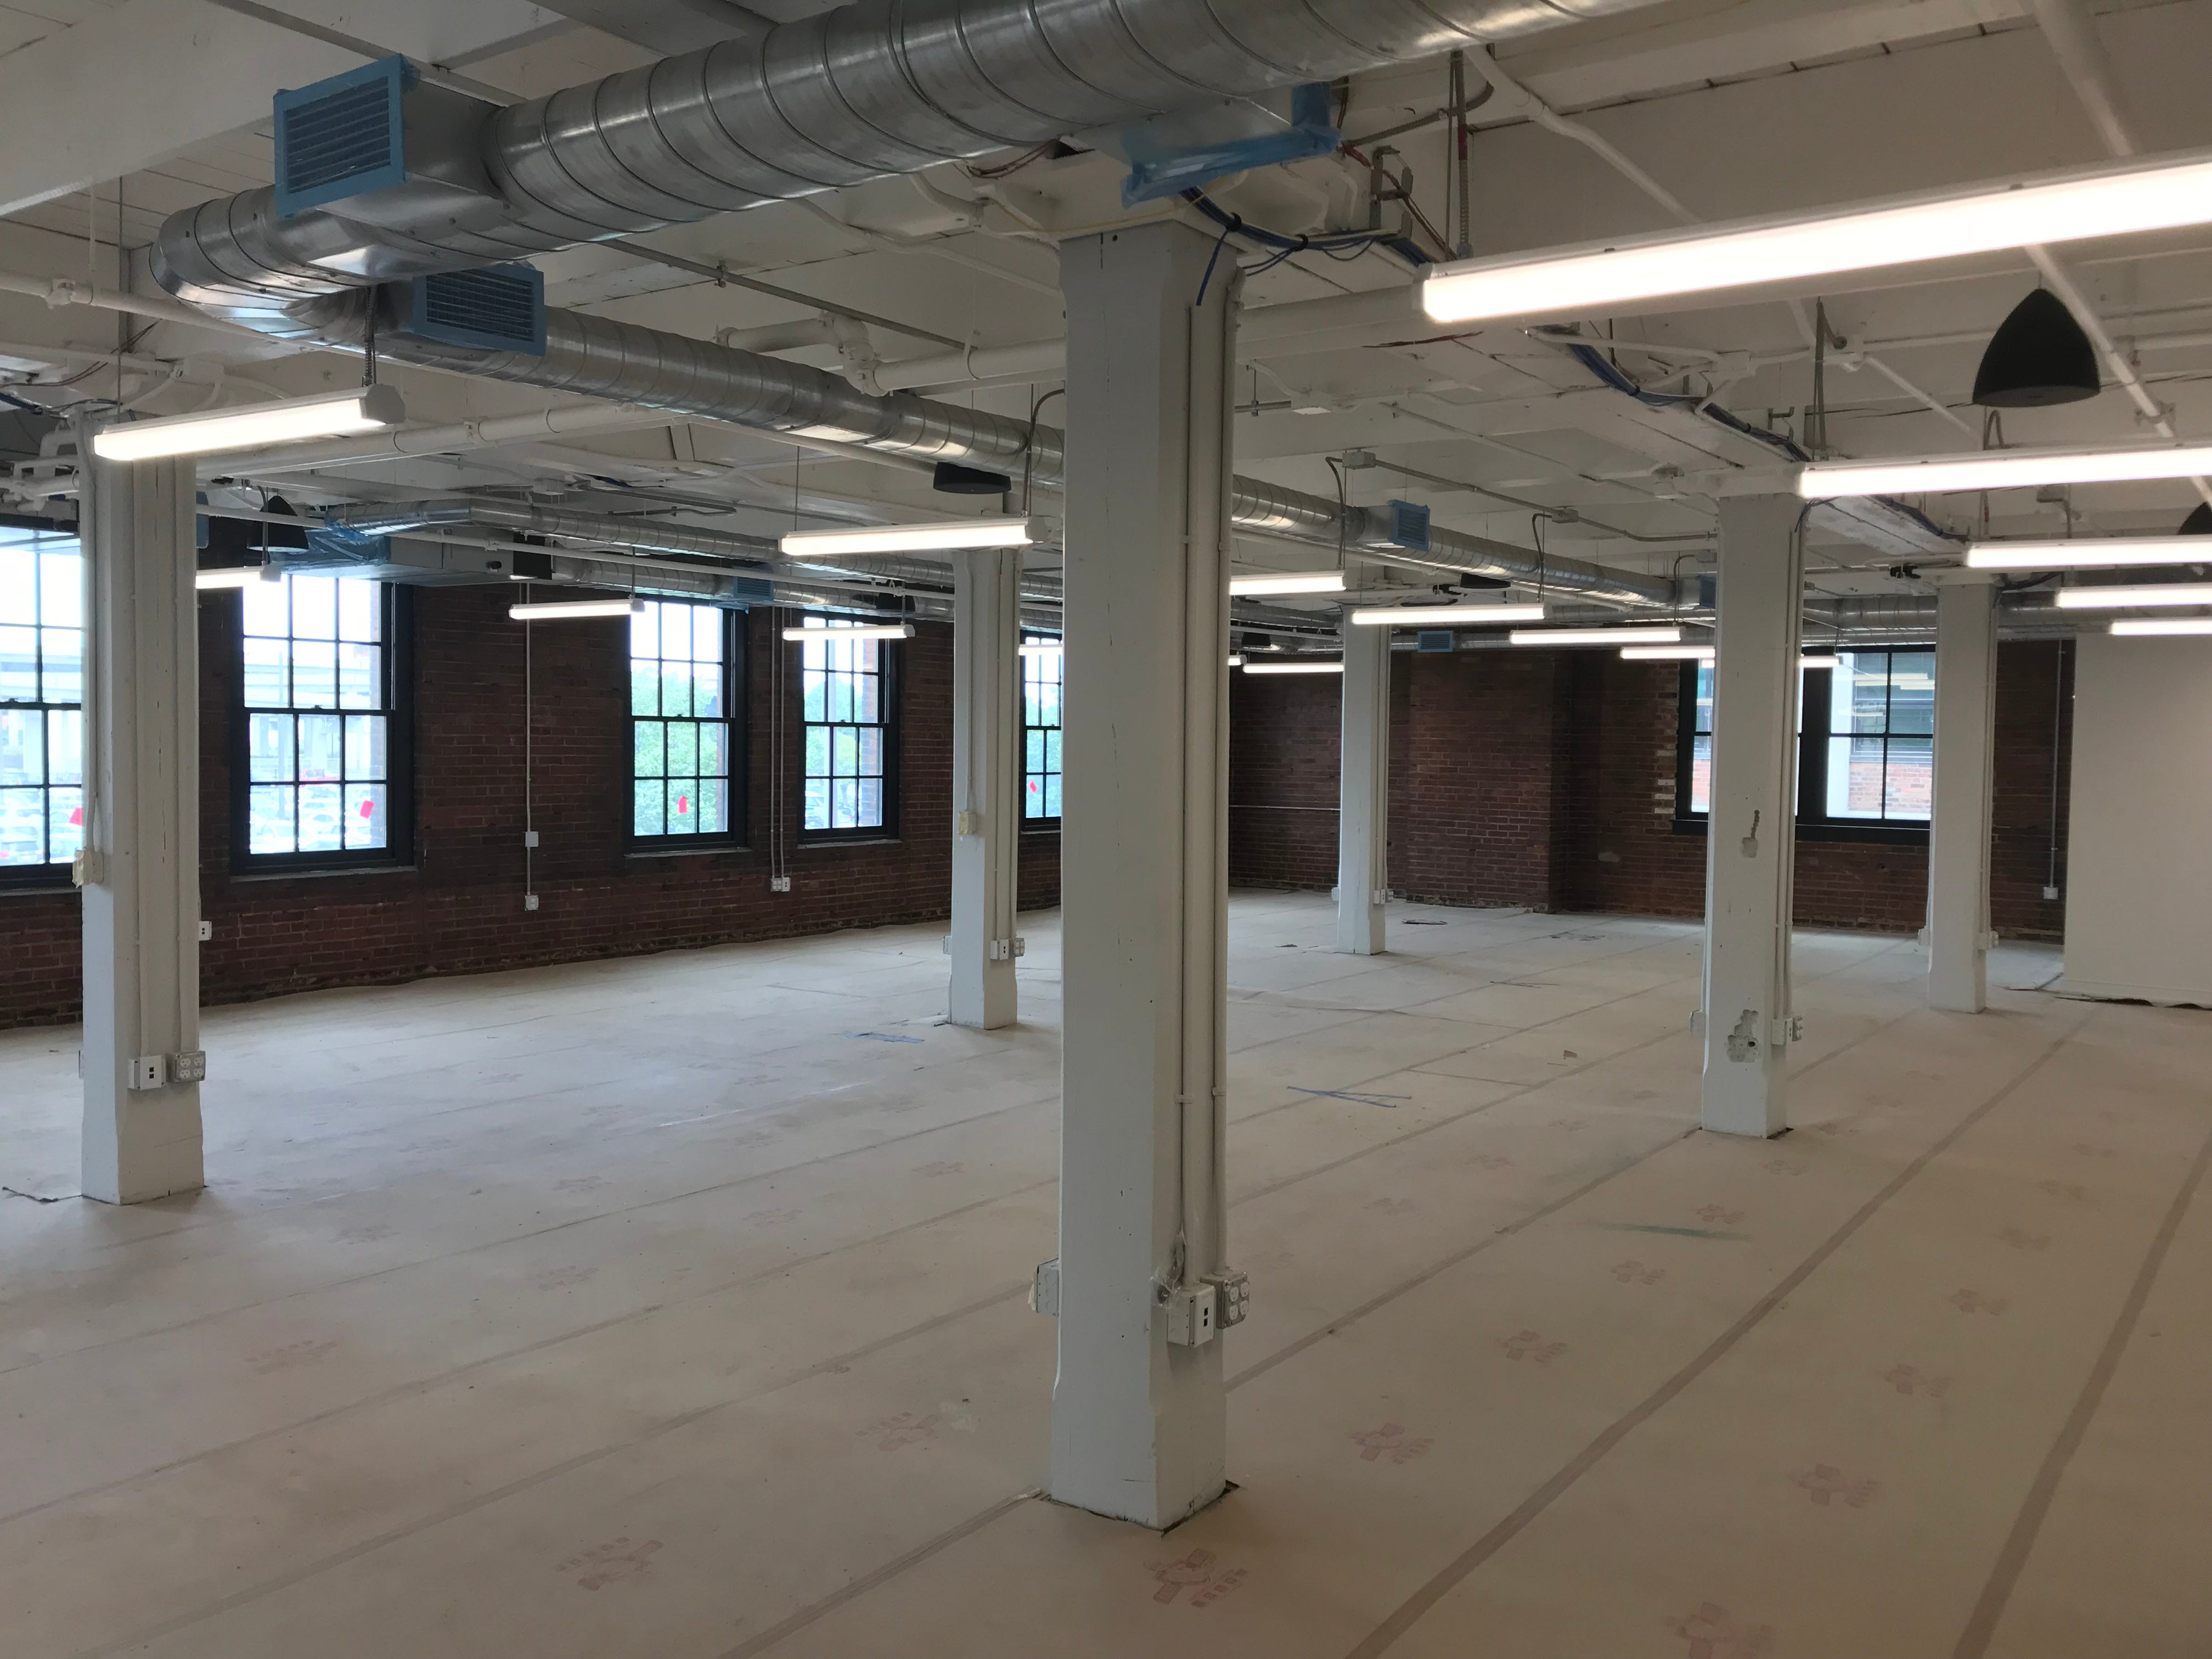 Second-floor office space for the sales and marketing staff of Labatt USA at the Labatt Brew House in Buffalo.